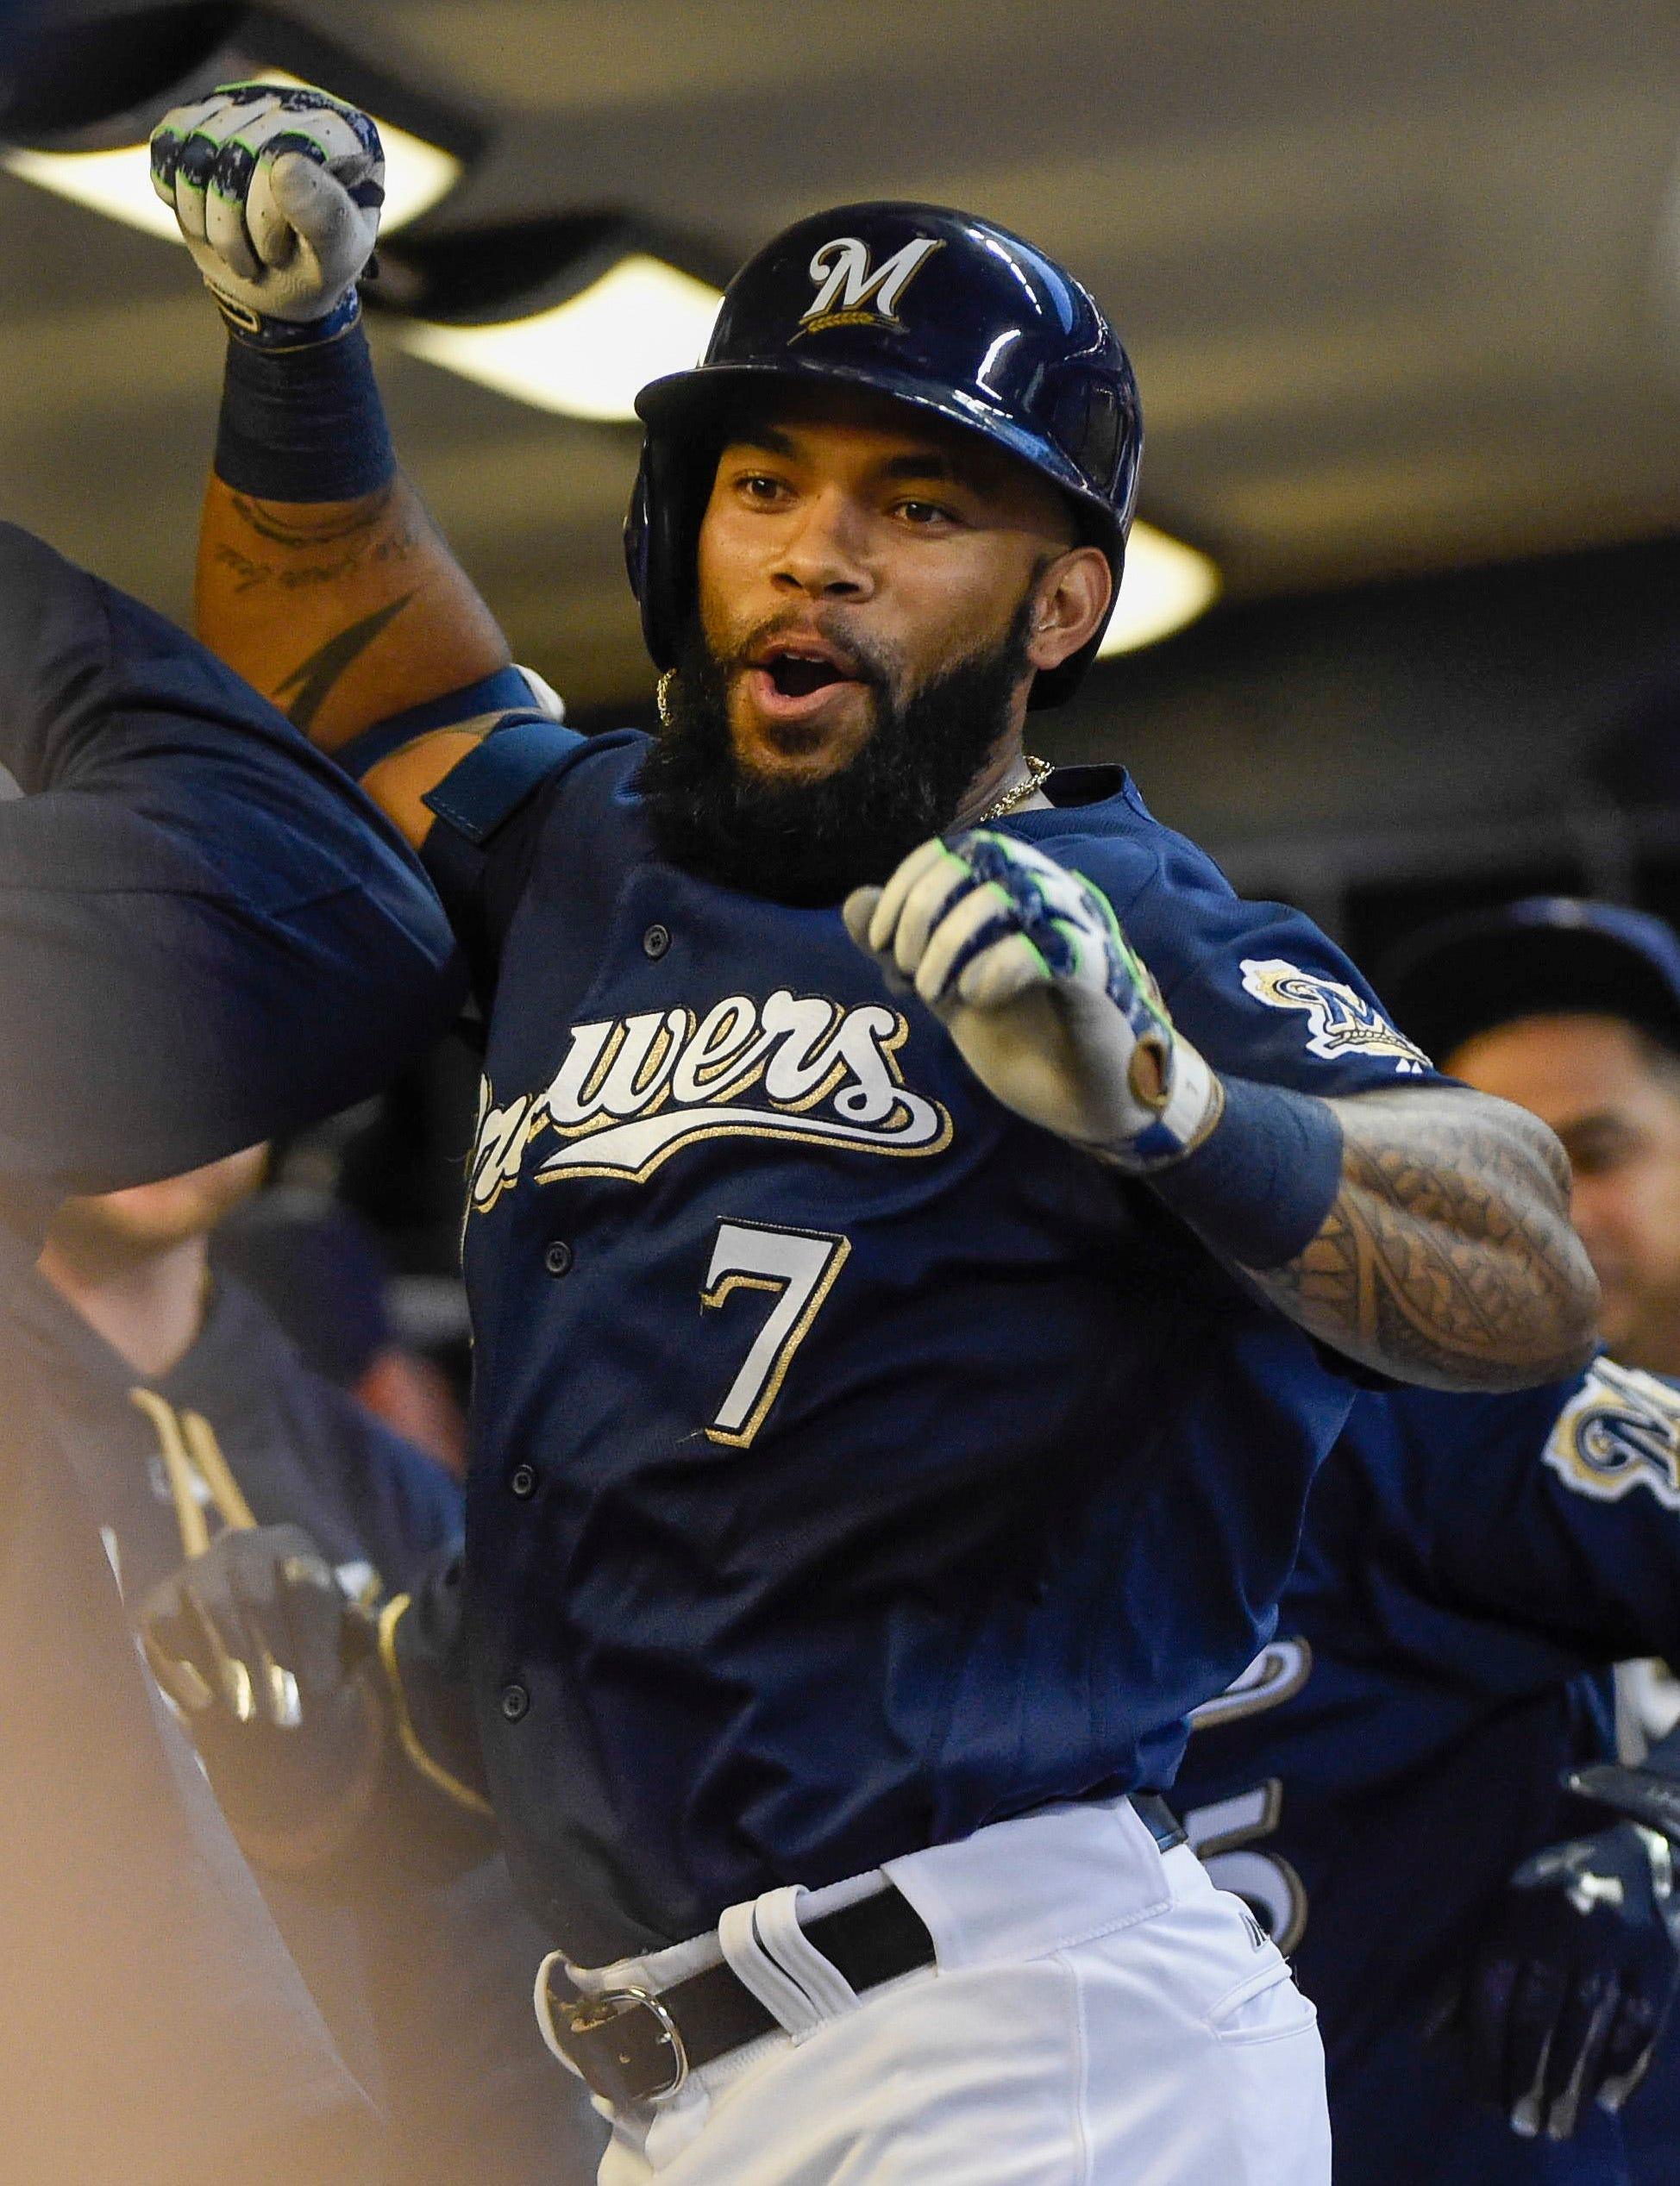 Notes: Thames has been center of national attention